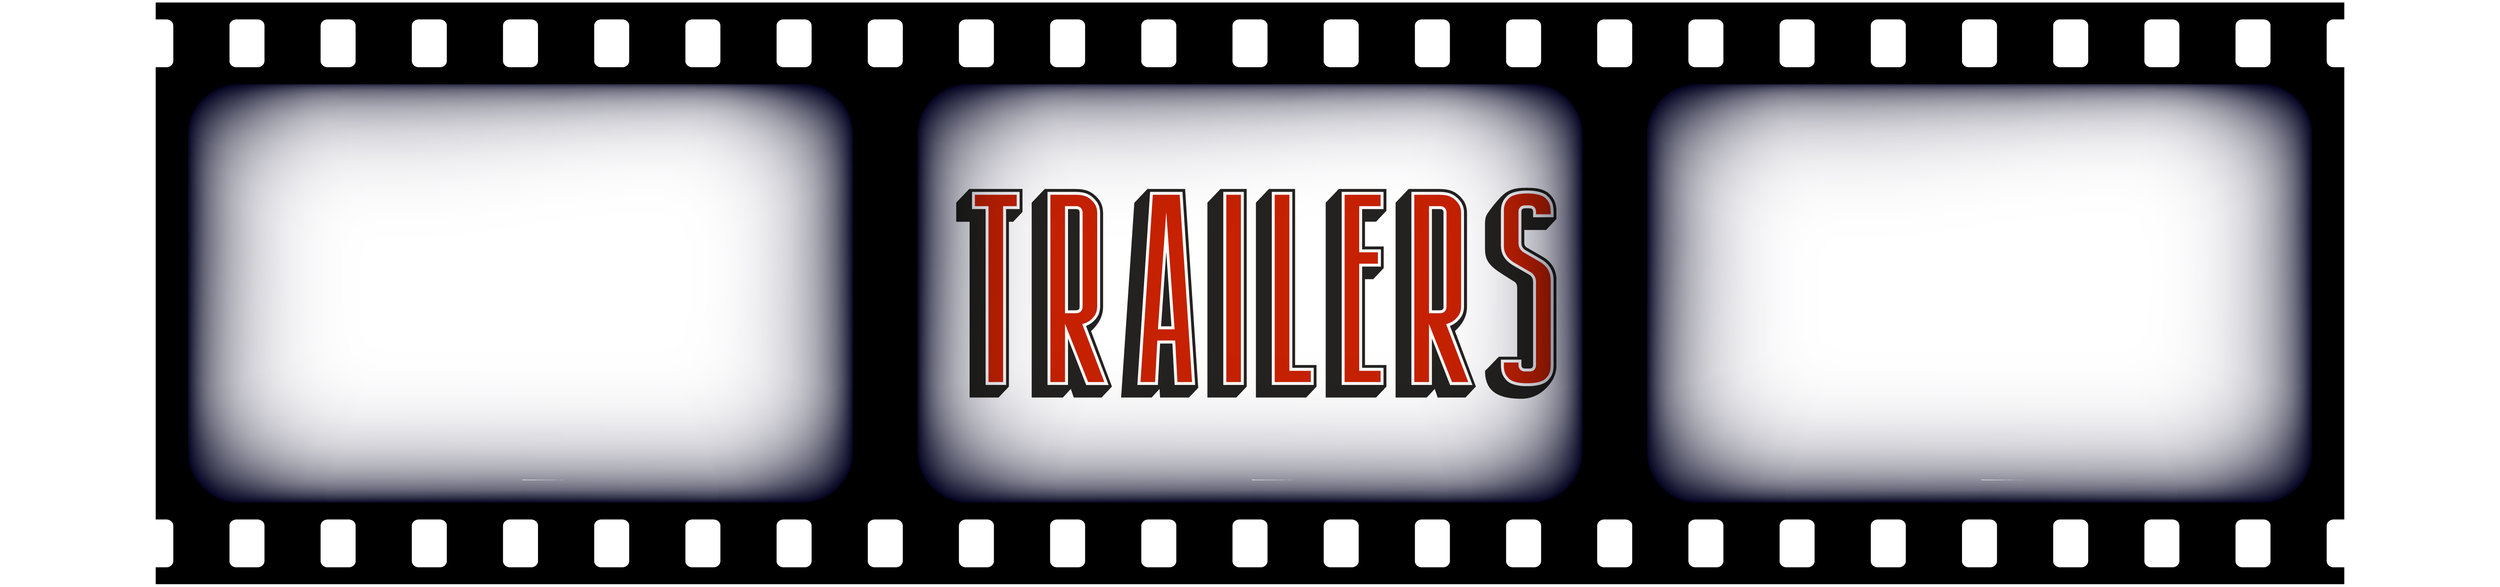 WTW Page Trailers Banner Web 9.24-01.jpg